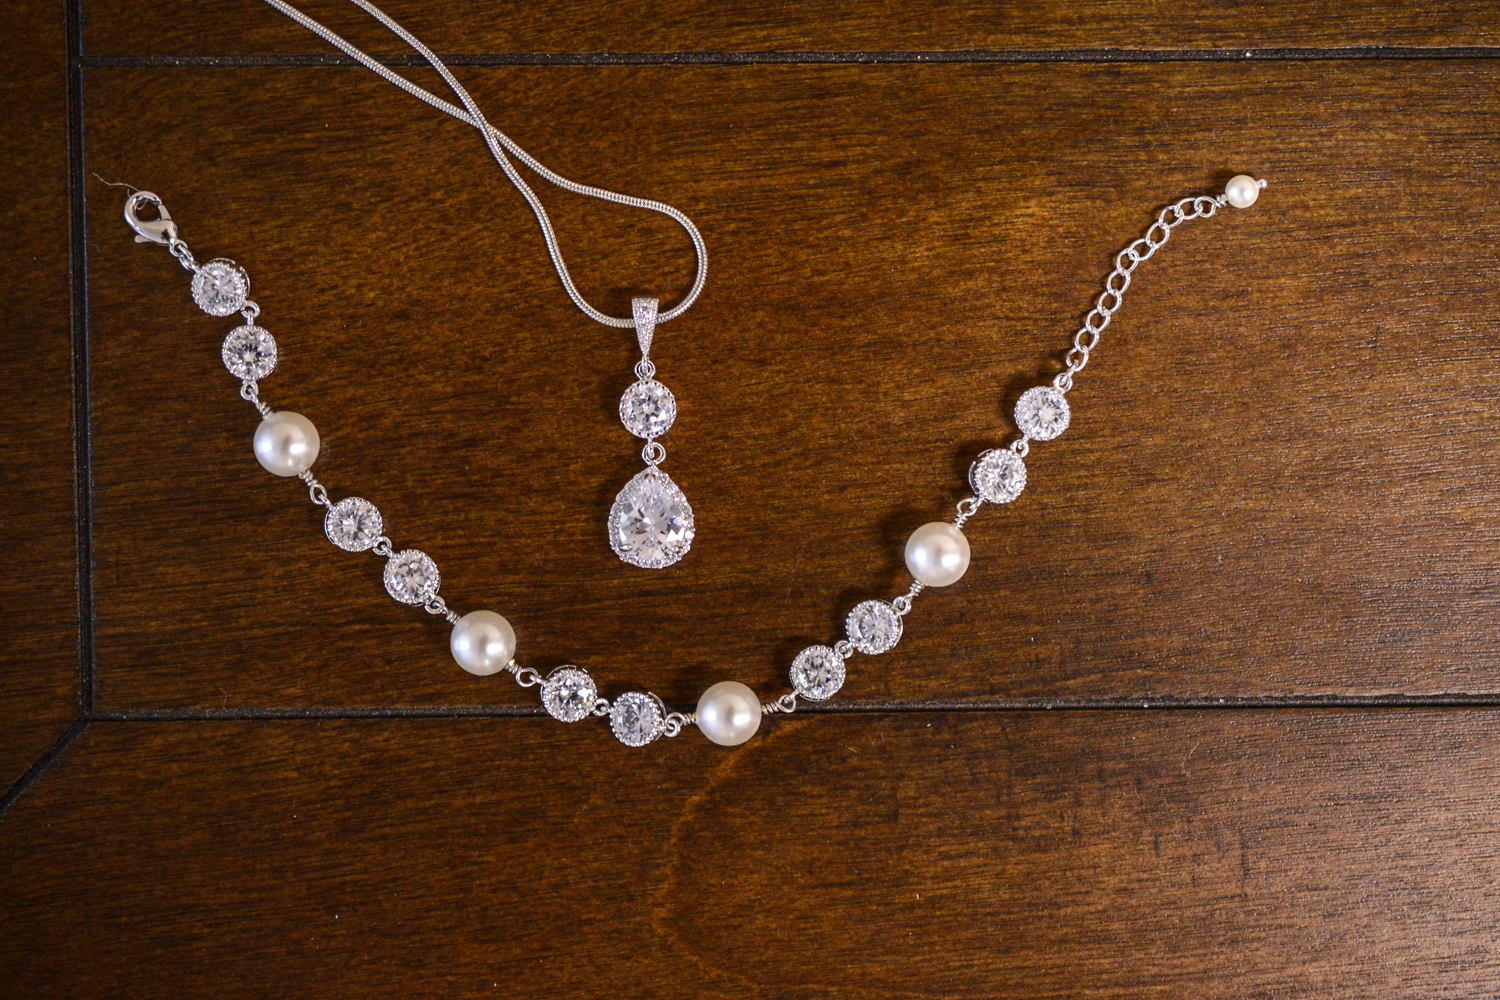 Bride's diamond jewelry on a wooden background |Maria Grace Photography